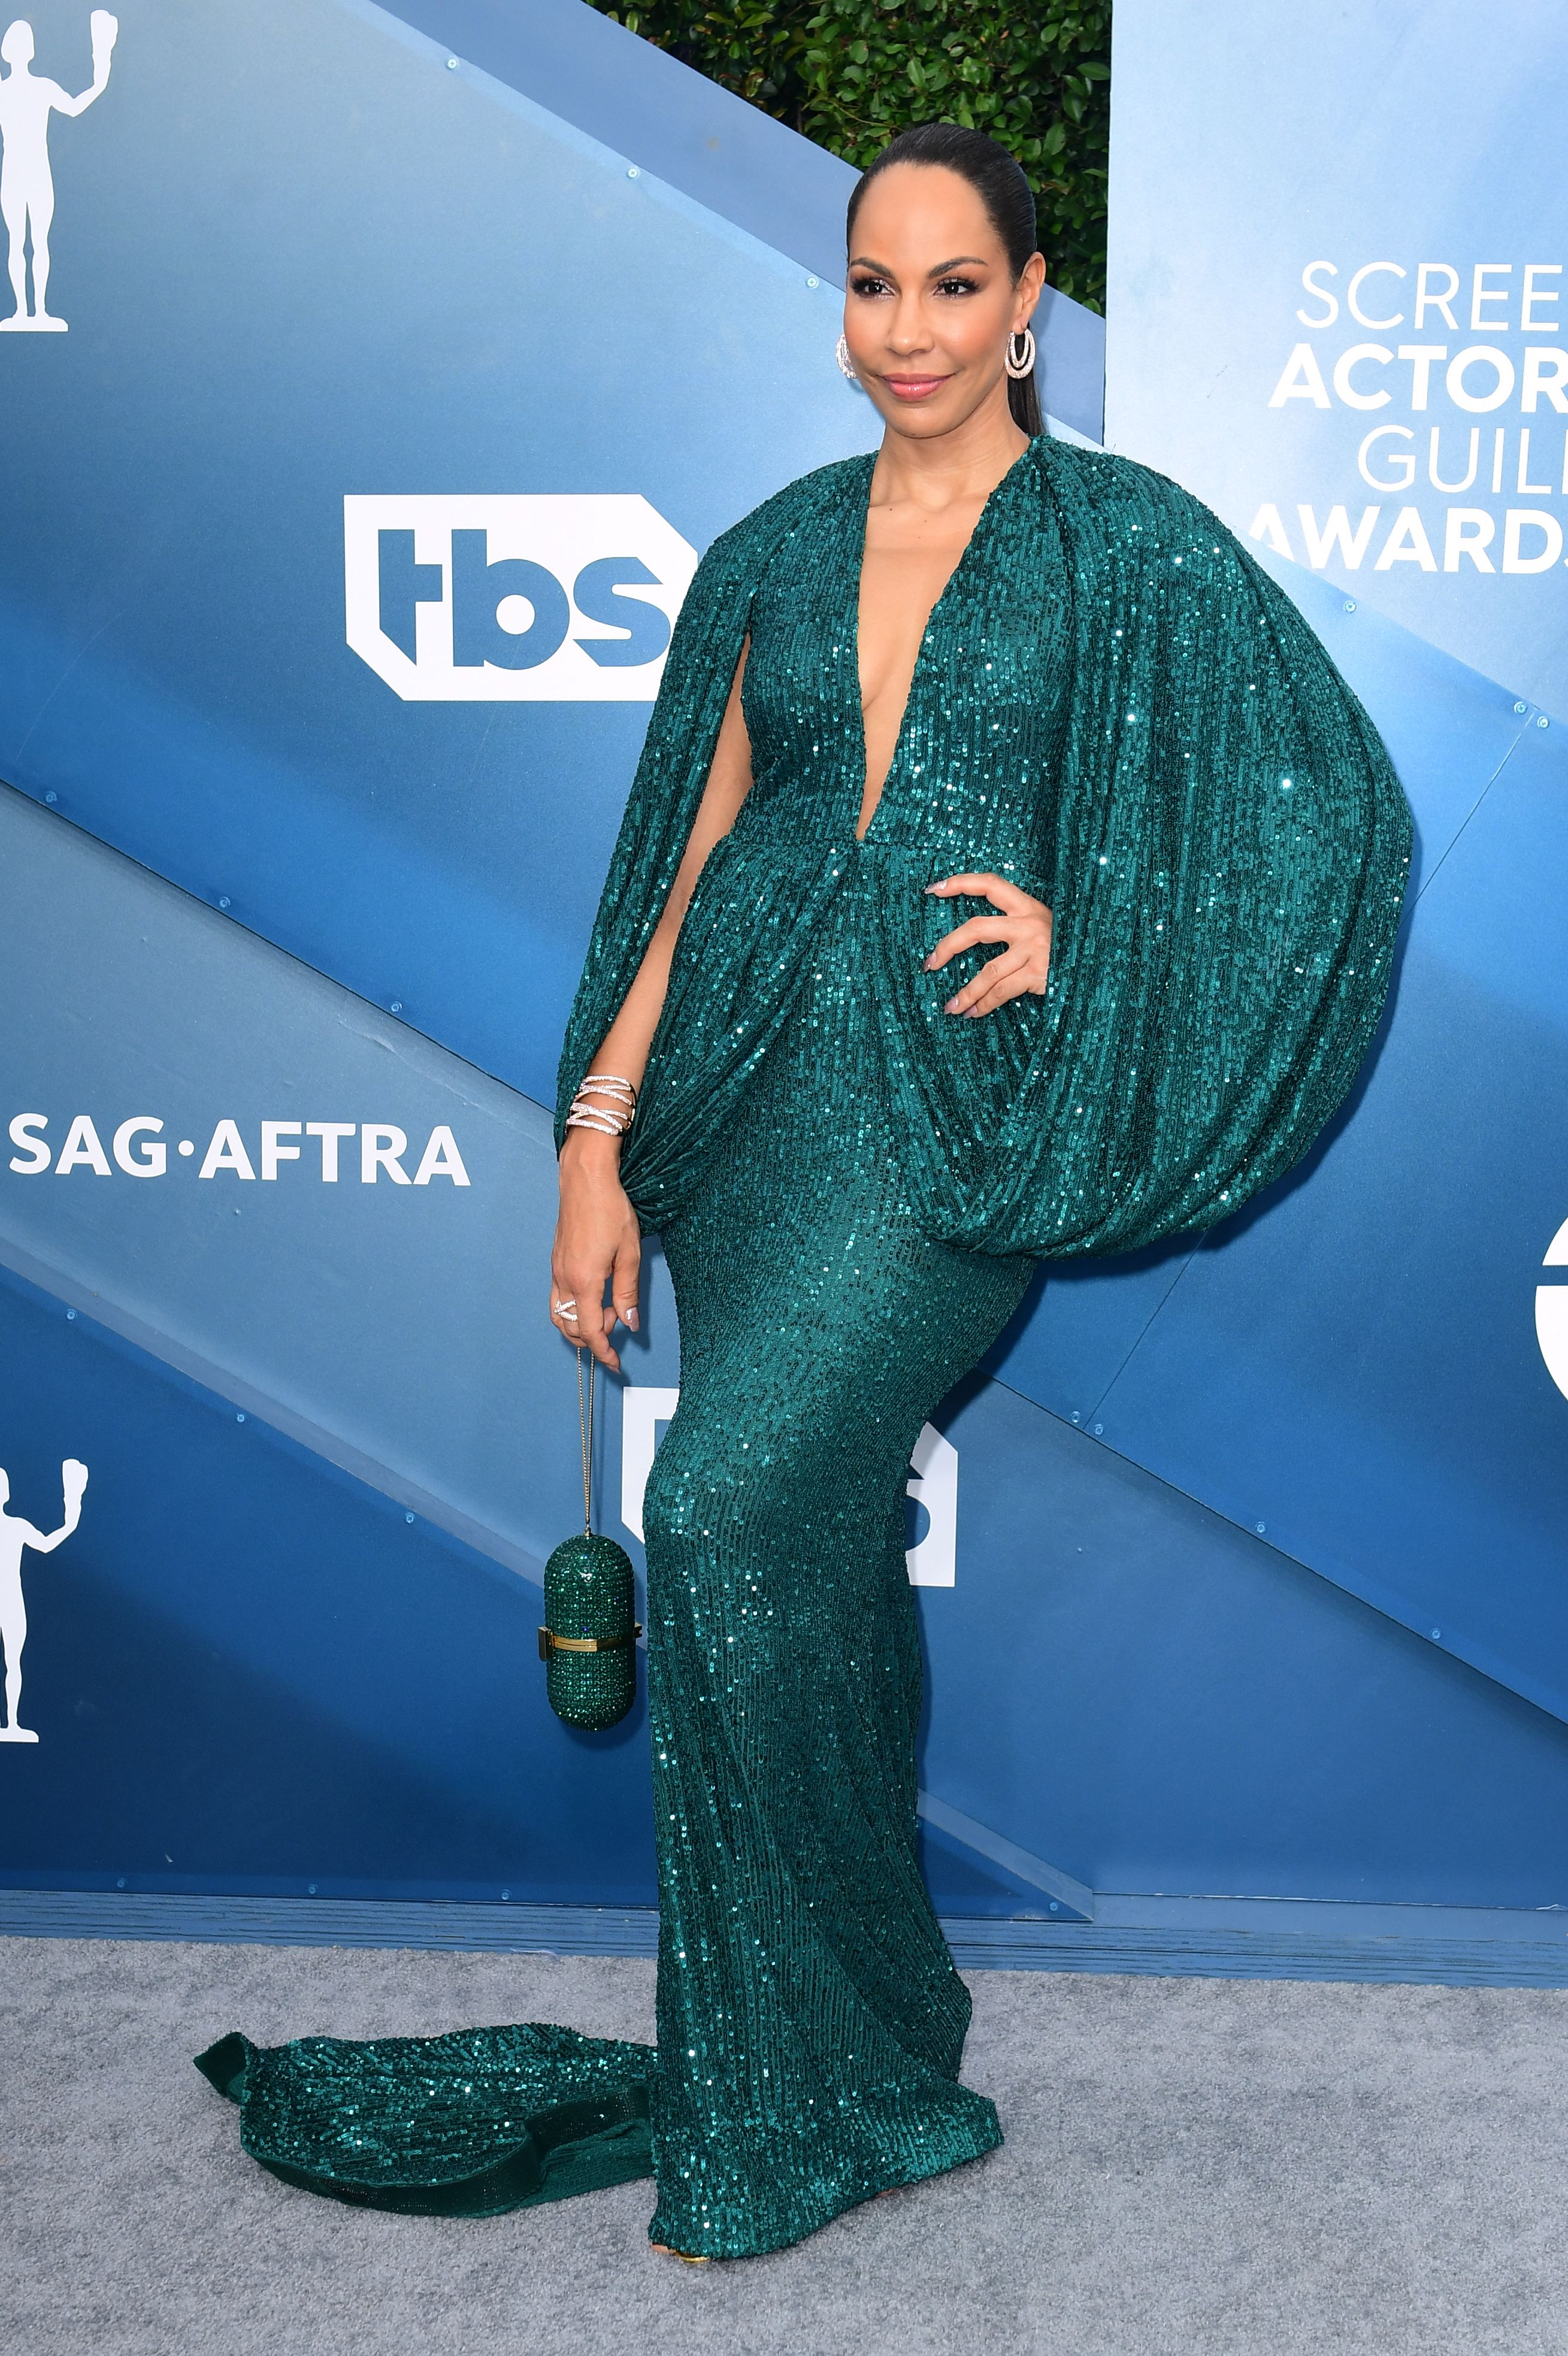 Canadian actress Amanda Brugel arrives for the 26th Annual Screen Actors Guild Awards at the Shrine Auditorium in Los Angeles on January 19, 2020. (Photo by FREDERIC J. BROWN / AFP) (Photo by FREDERIC J. BROWN/AFP via Getty Images)